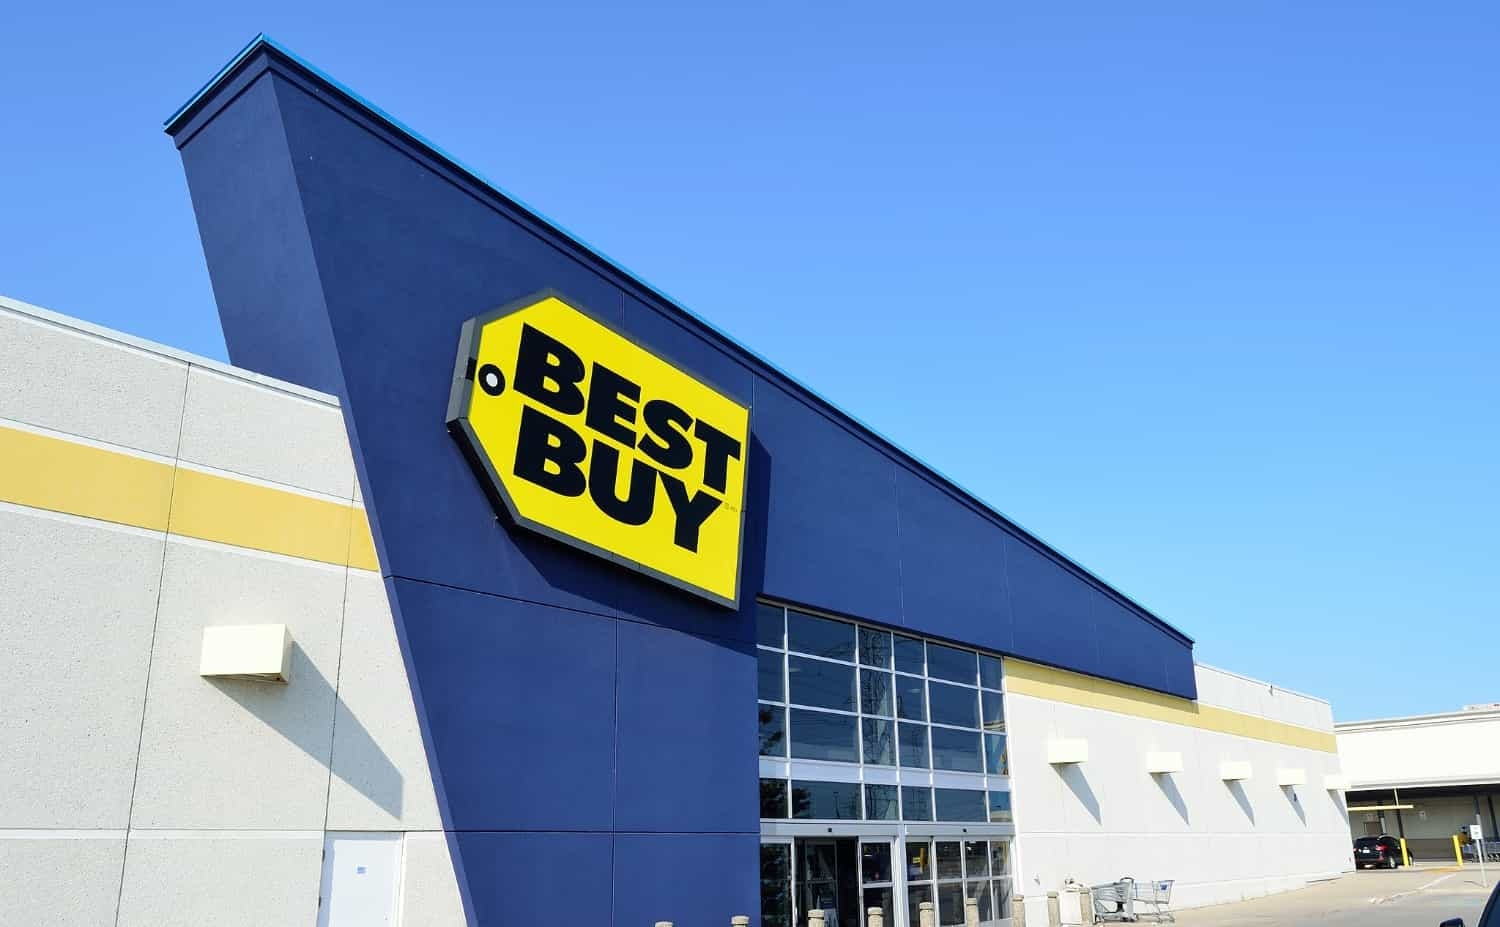 Best Buy is a successful brick and mortar electronics retailer.